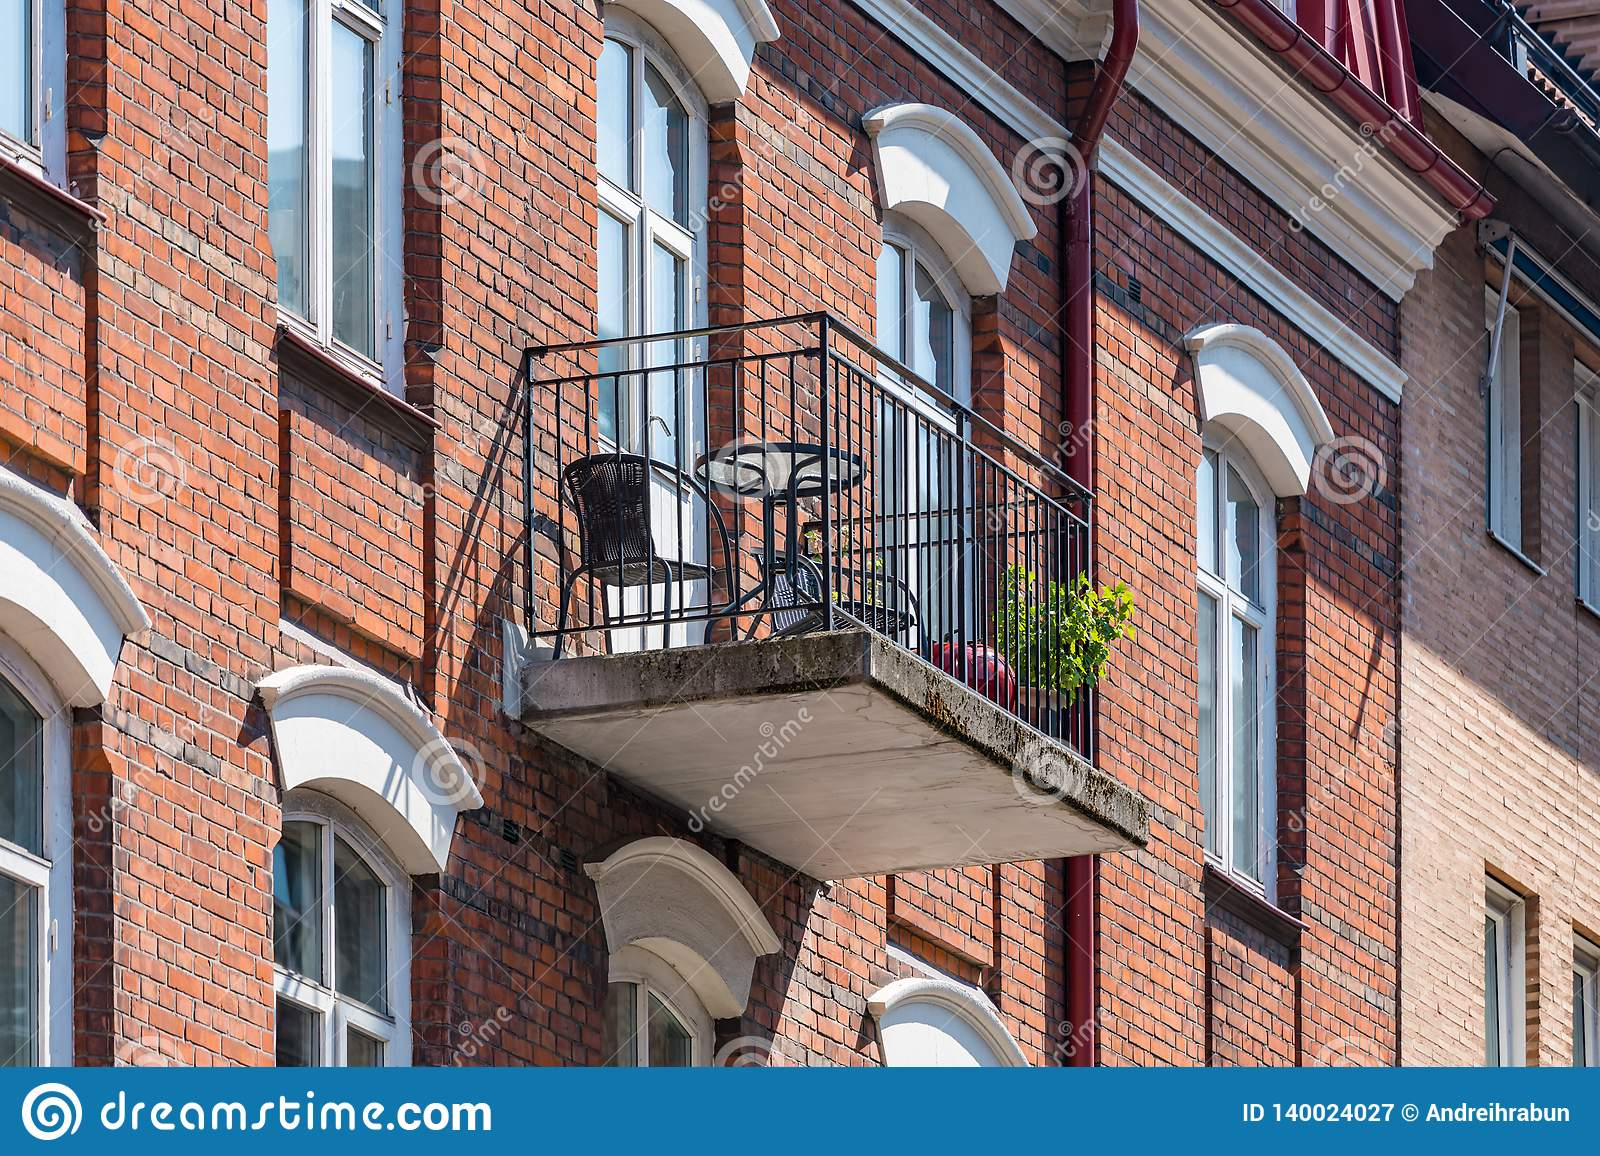 Architectural details of modern apartment building. Balcony with chairs and flowers